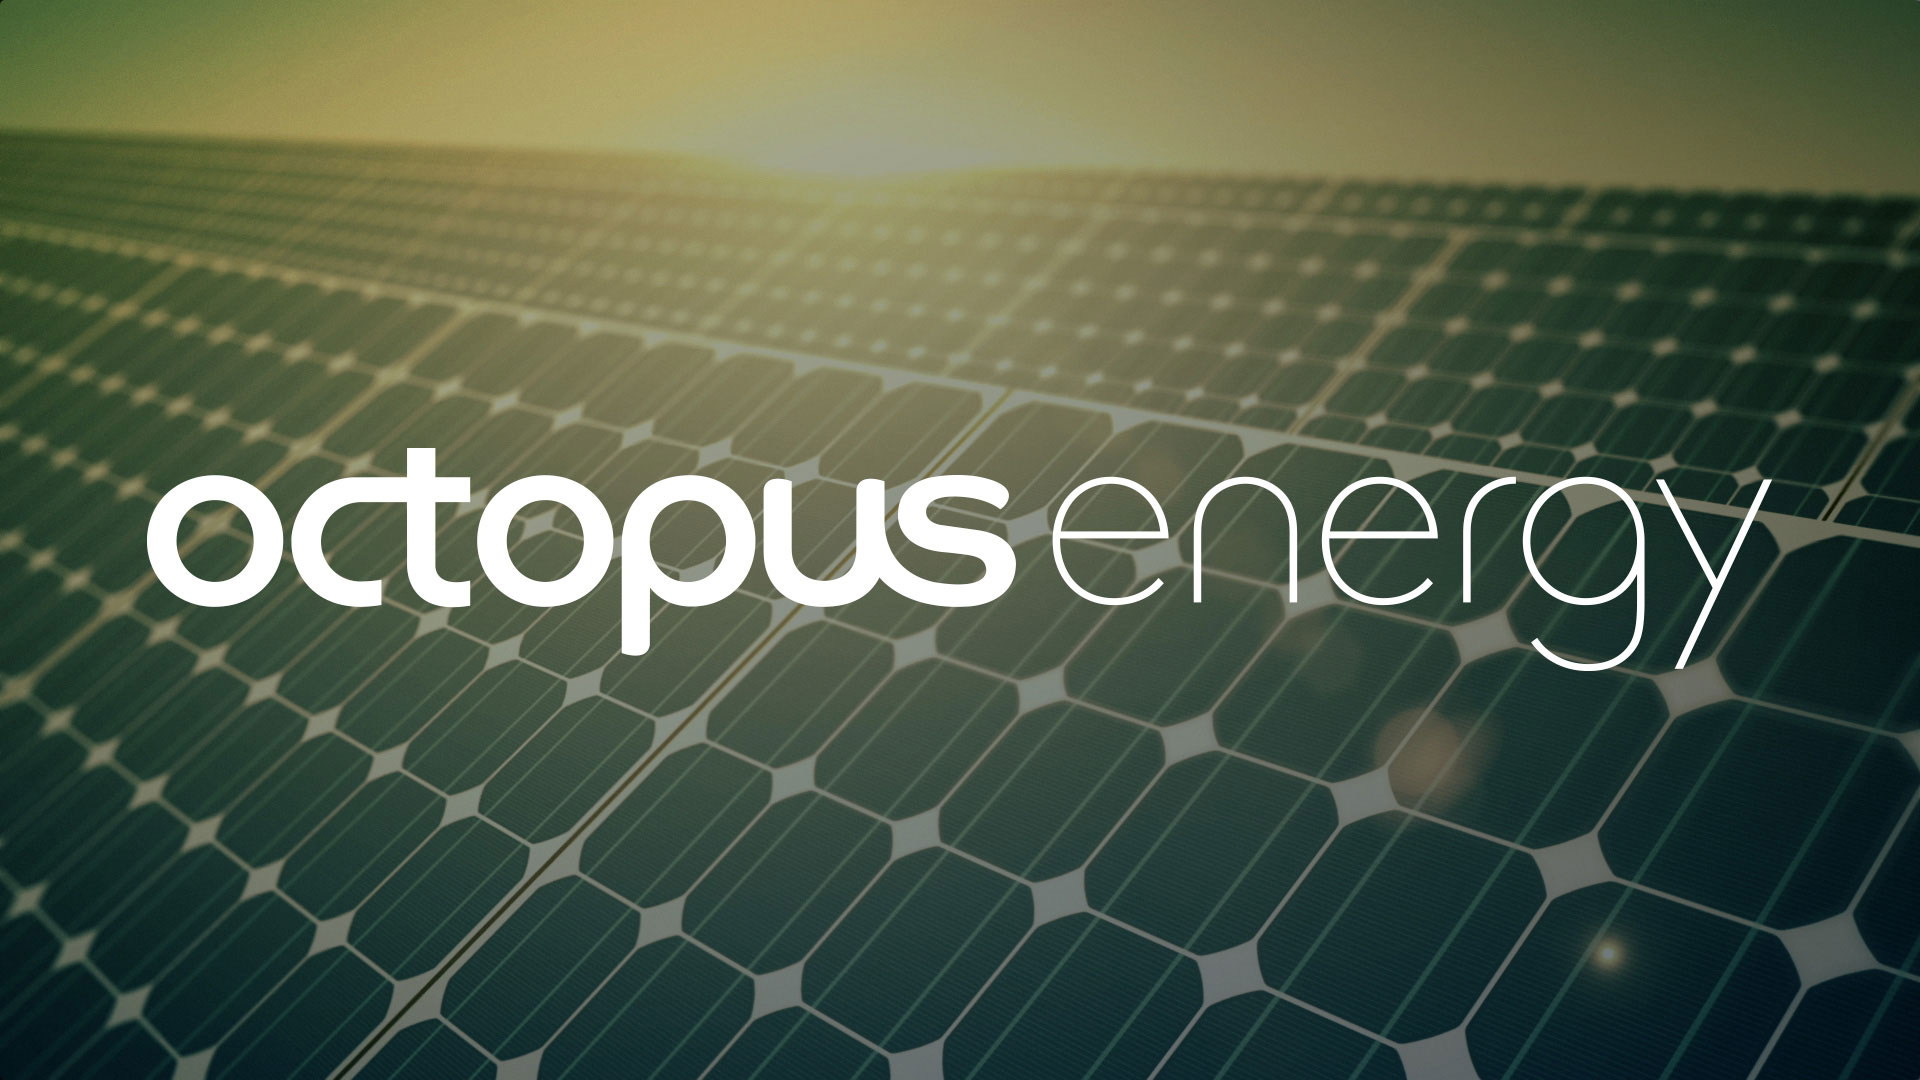 Octopus energy reviews: is it actually a good energy supplier?